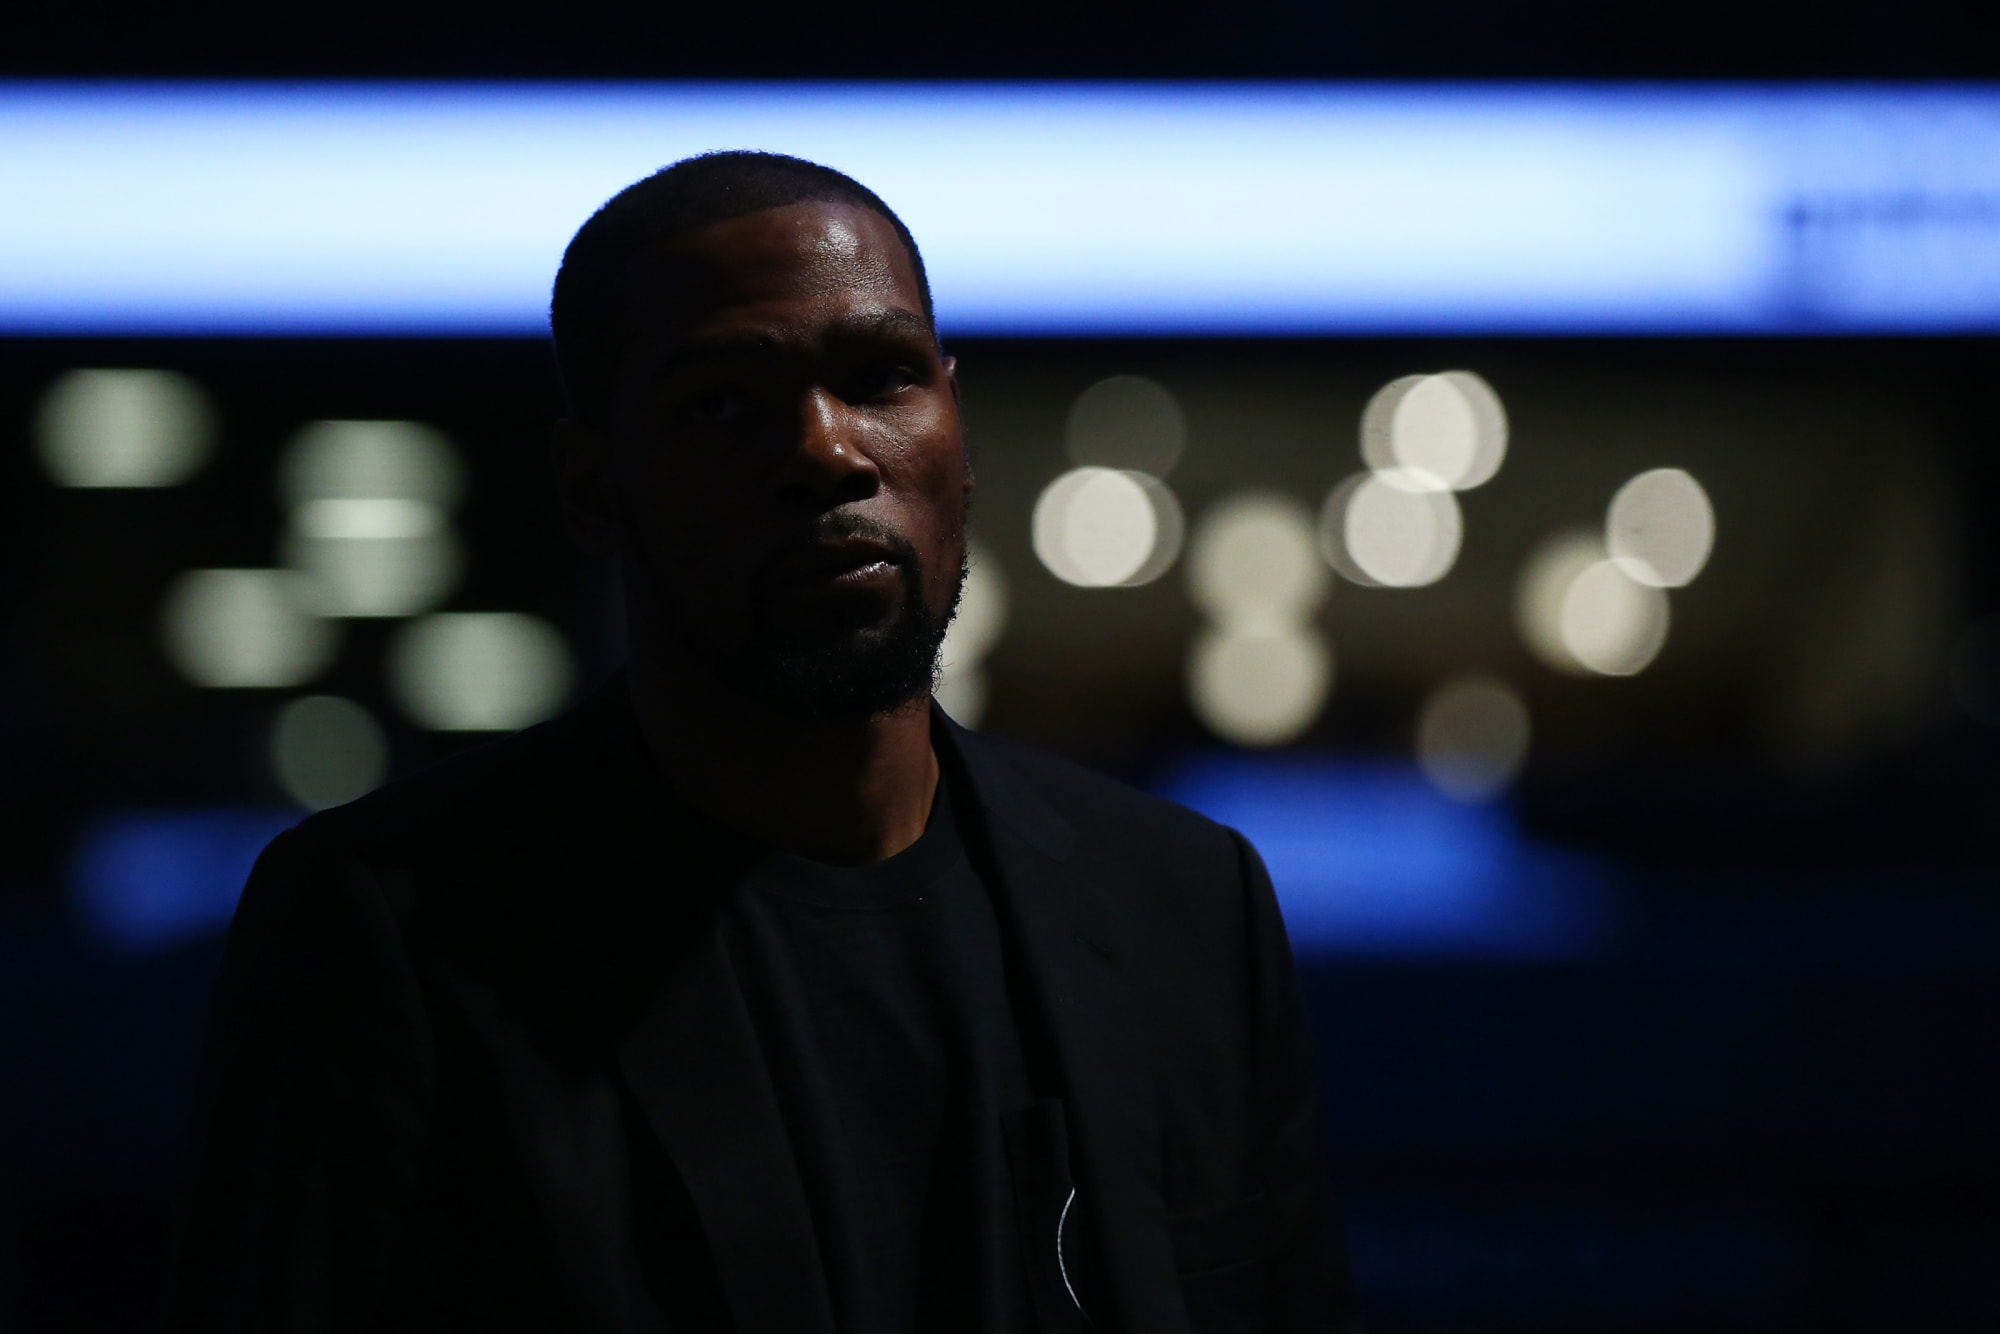 Brooklyn Nets: Is Kevin Durant similar to Darth Vader?